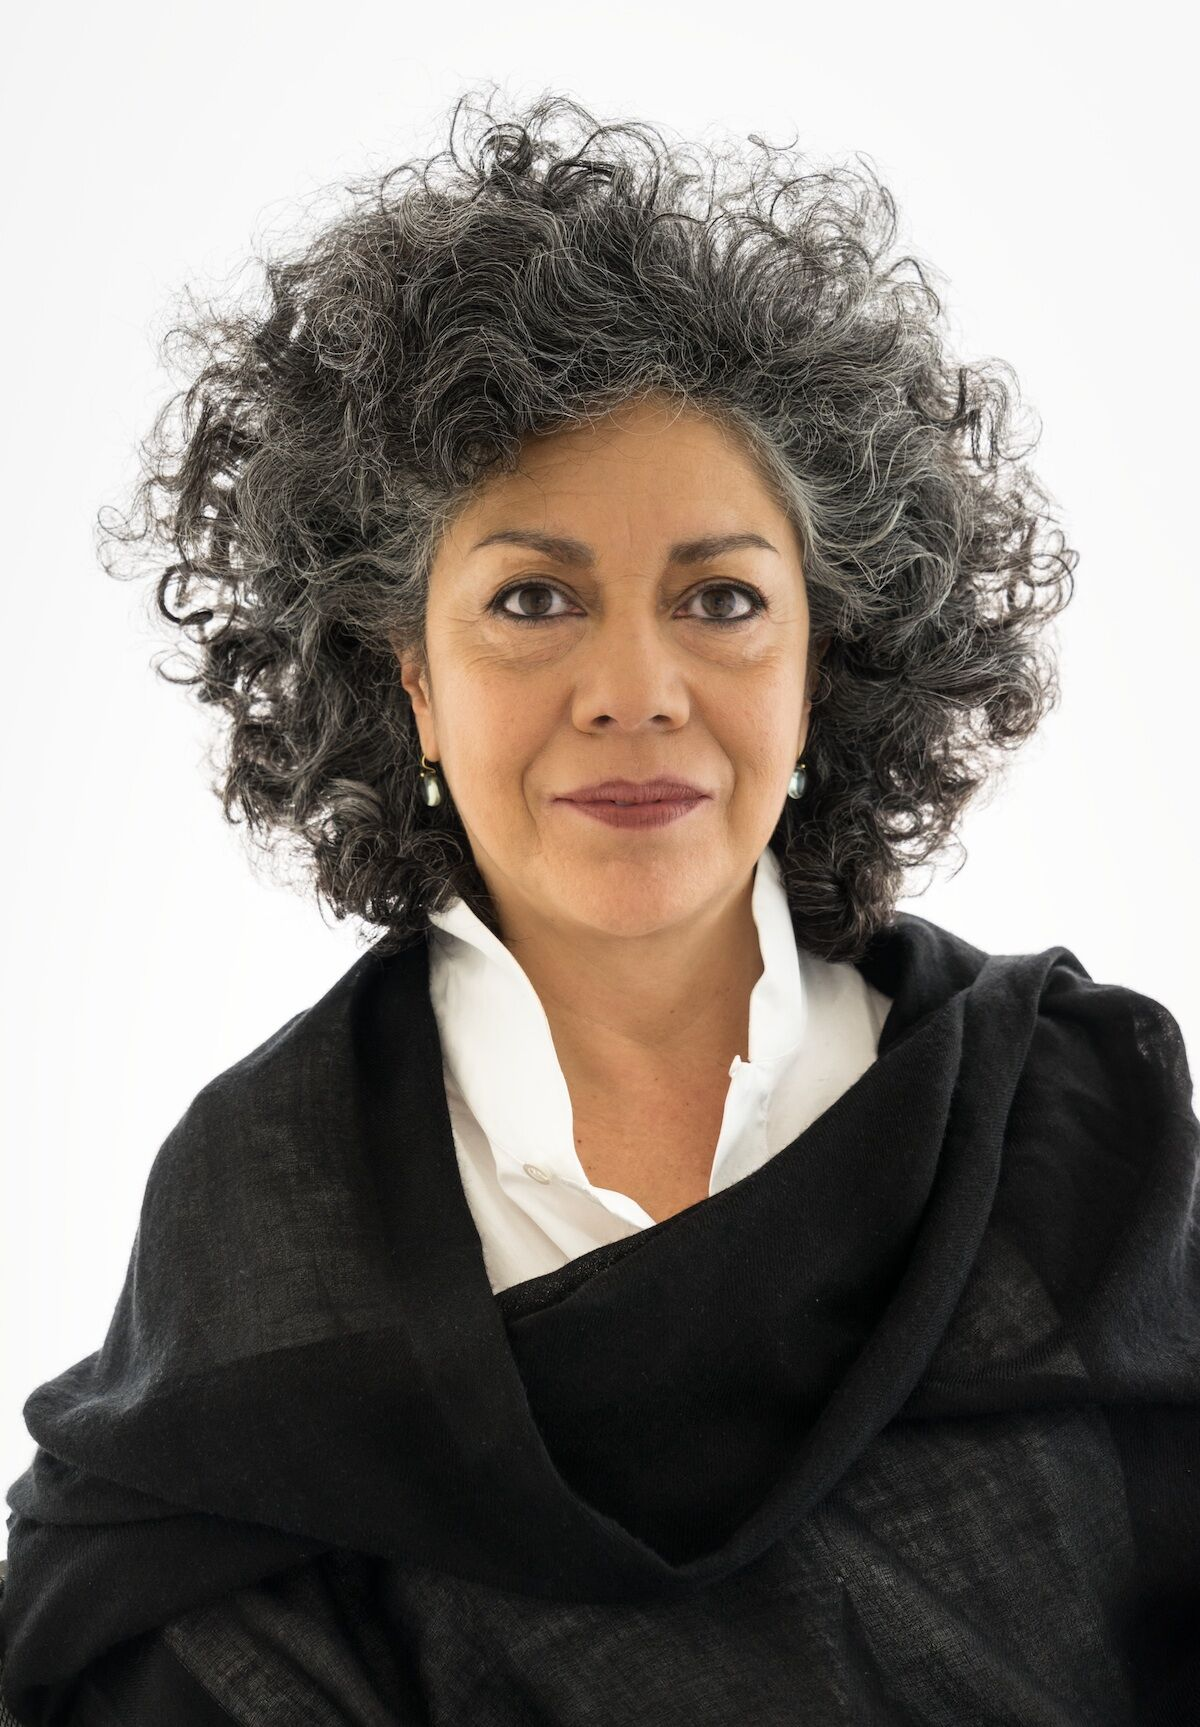 Doris Salcedo. Courtesy Solomon R. Guggenheim Foundation. Photo by David Heald.